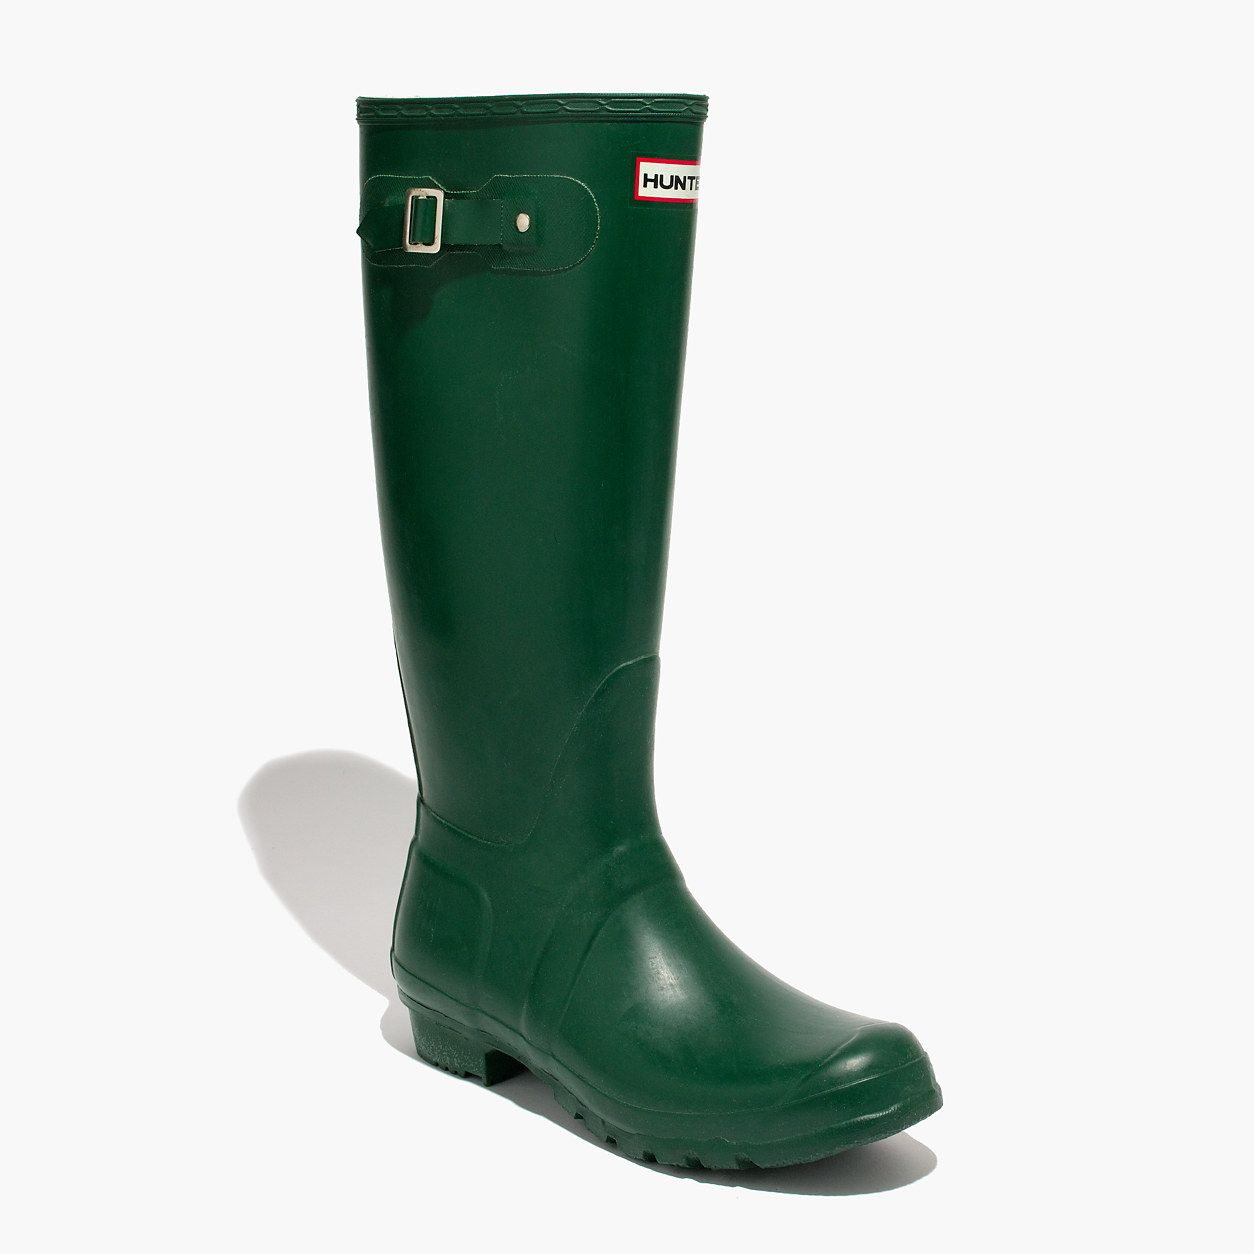 Hunter® Packable Wellies : weather boots   Madewell